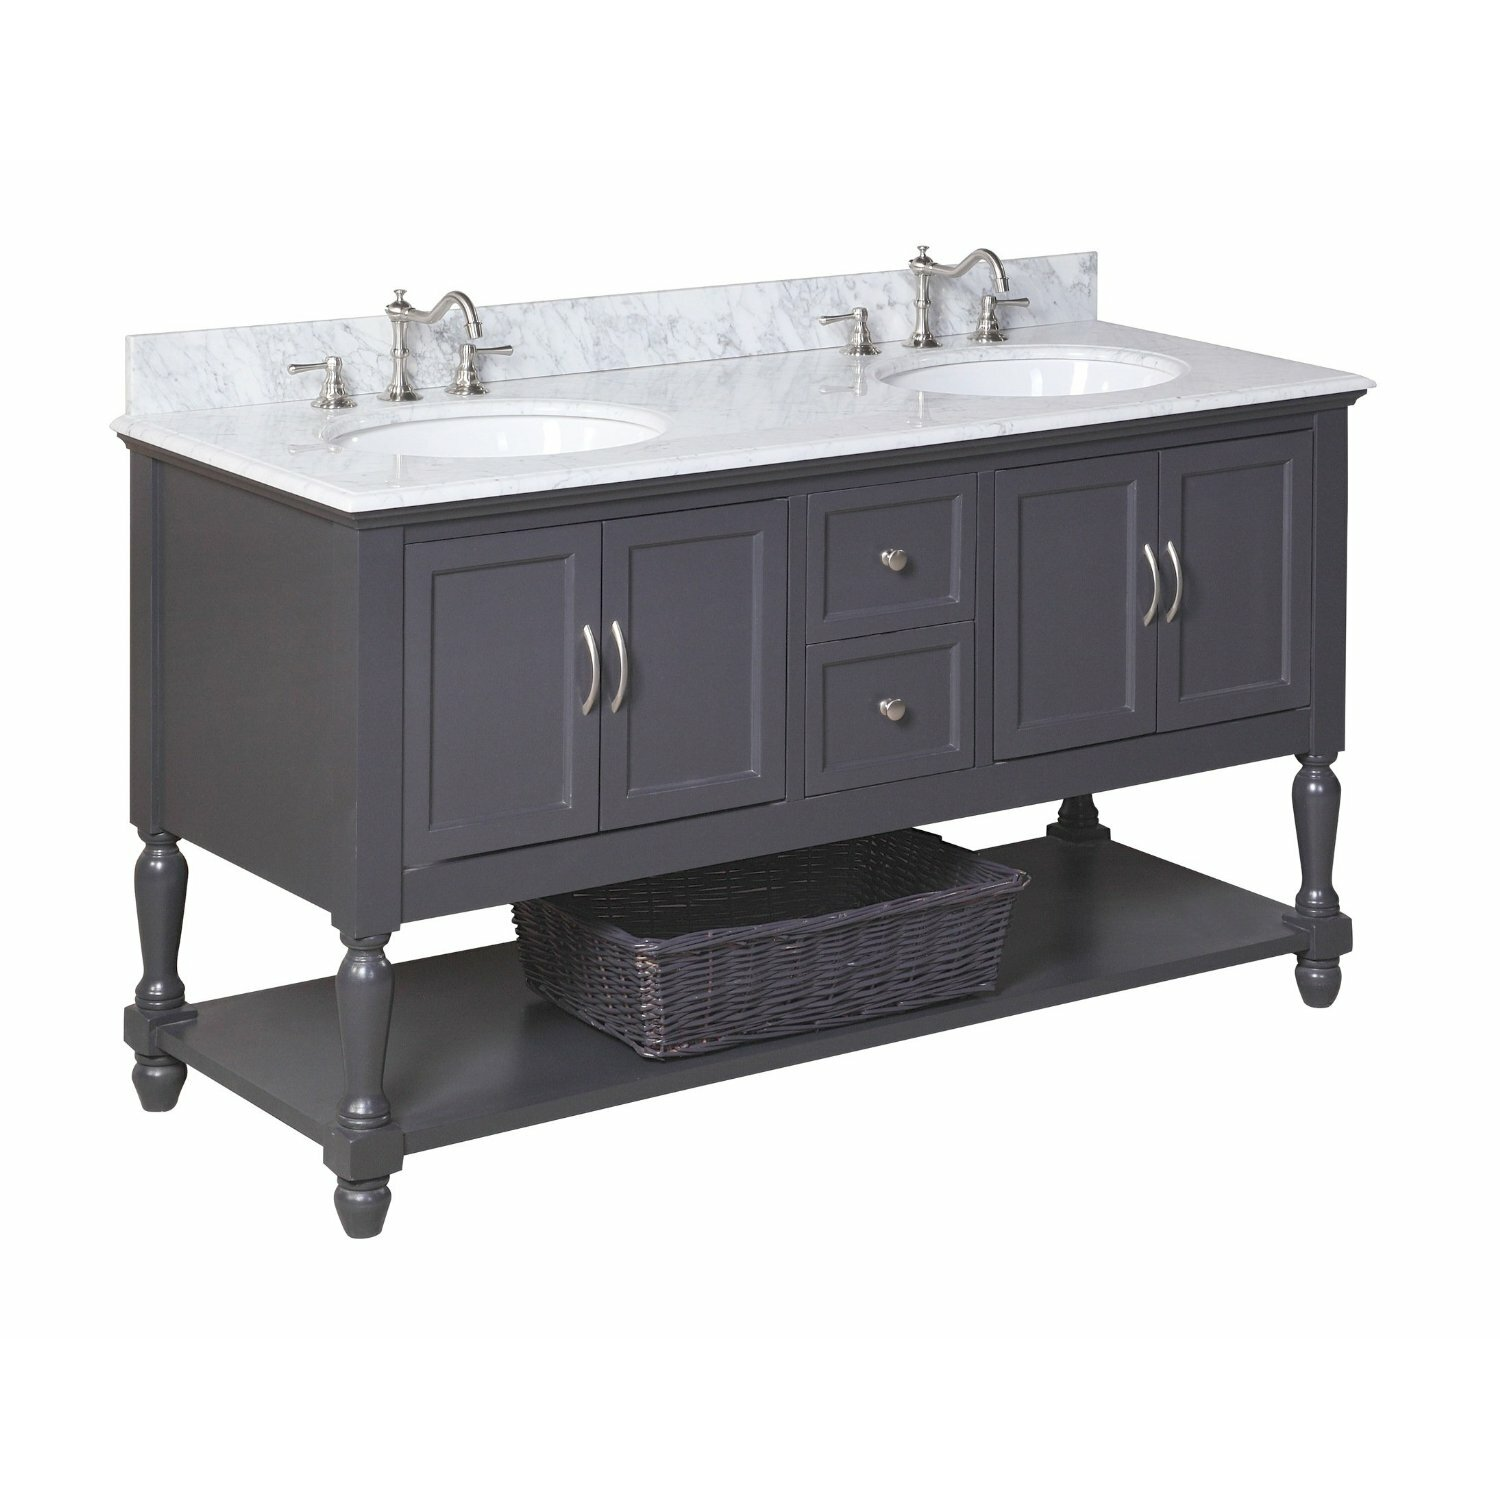 Kitchen Bath Collection Beverly 60quot; Double Bathroom Vanity Set